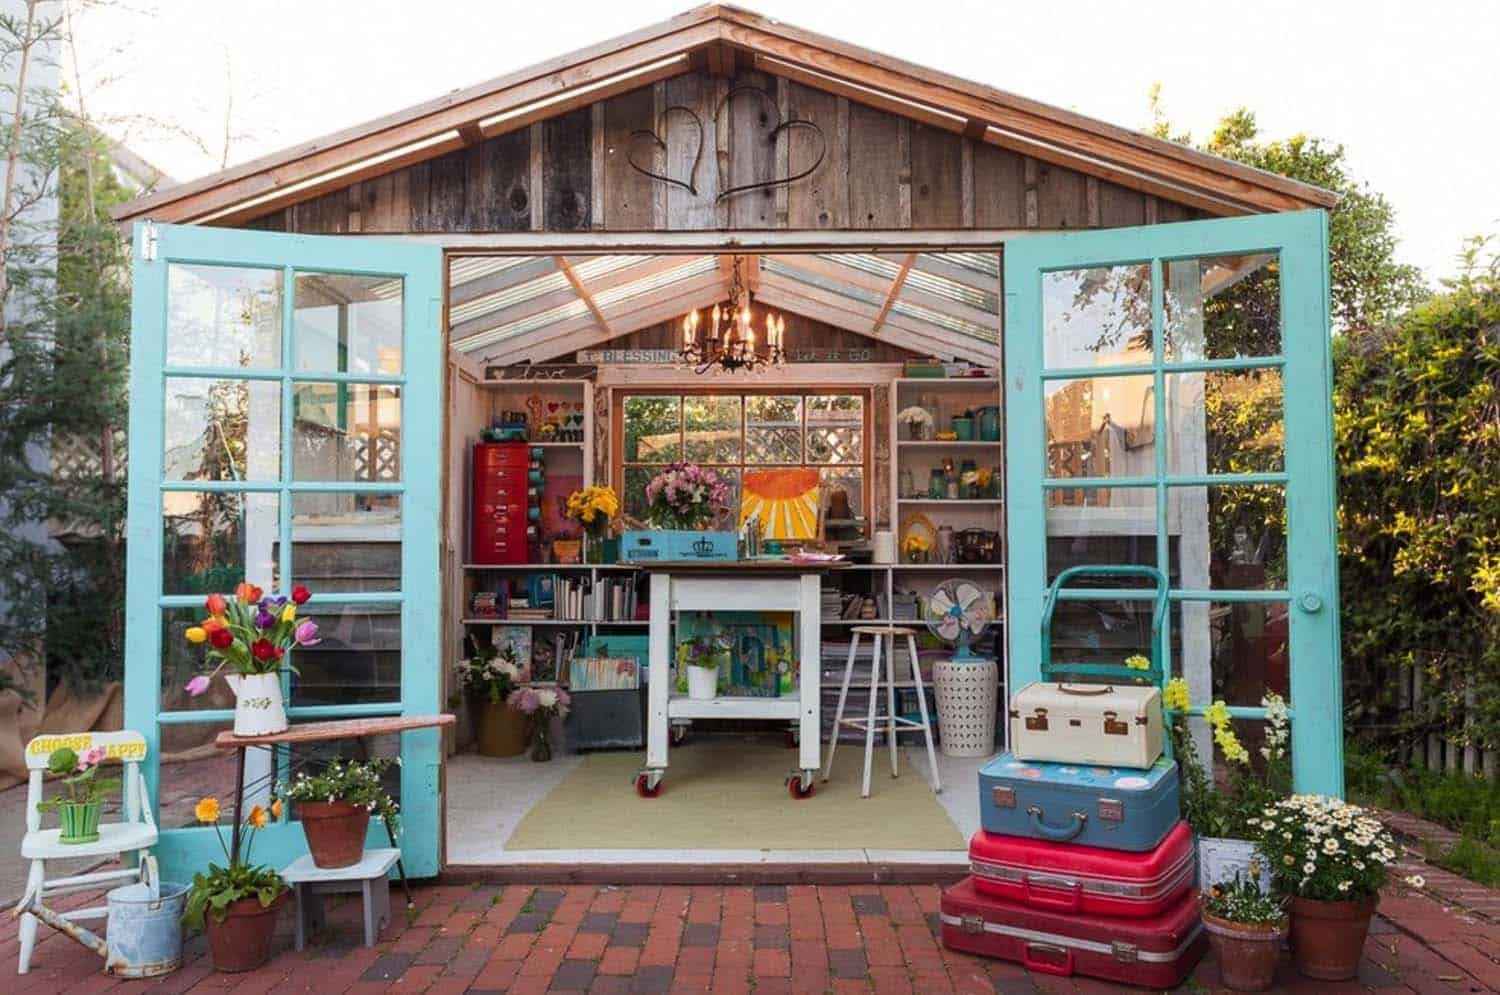 she-shed-artist-studio-backyard-getaway